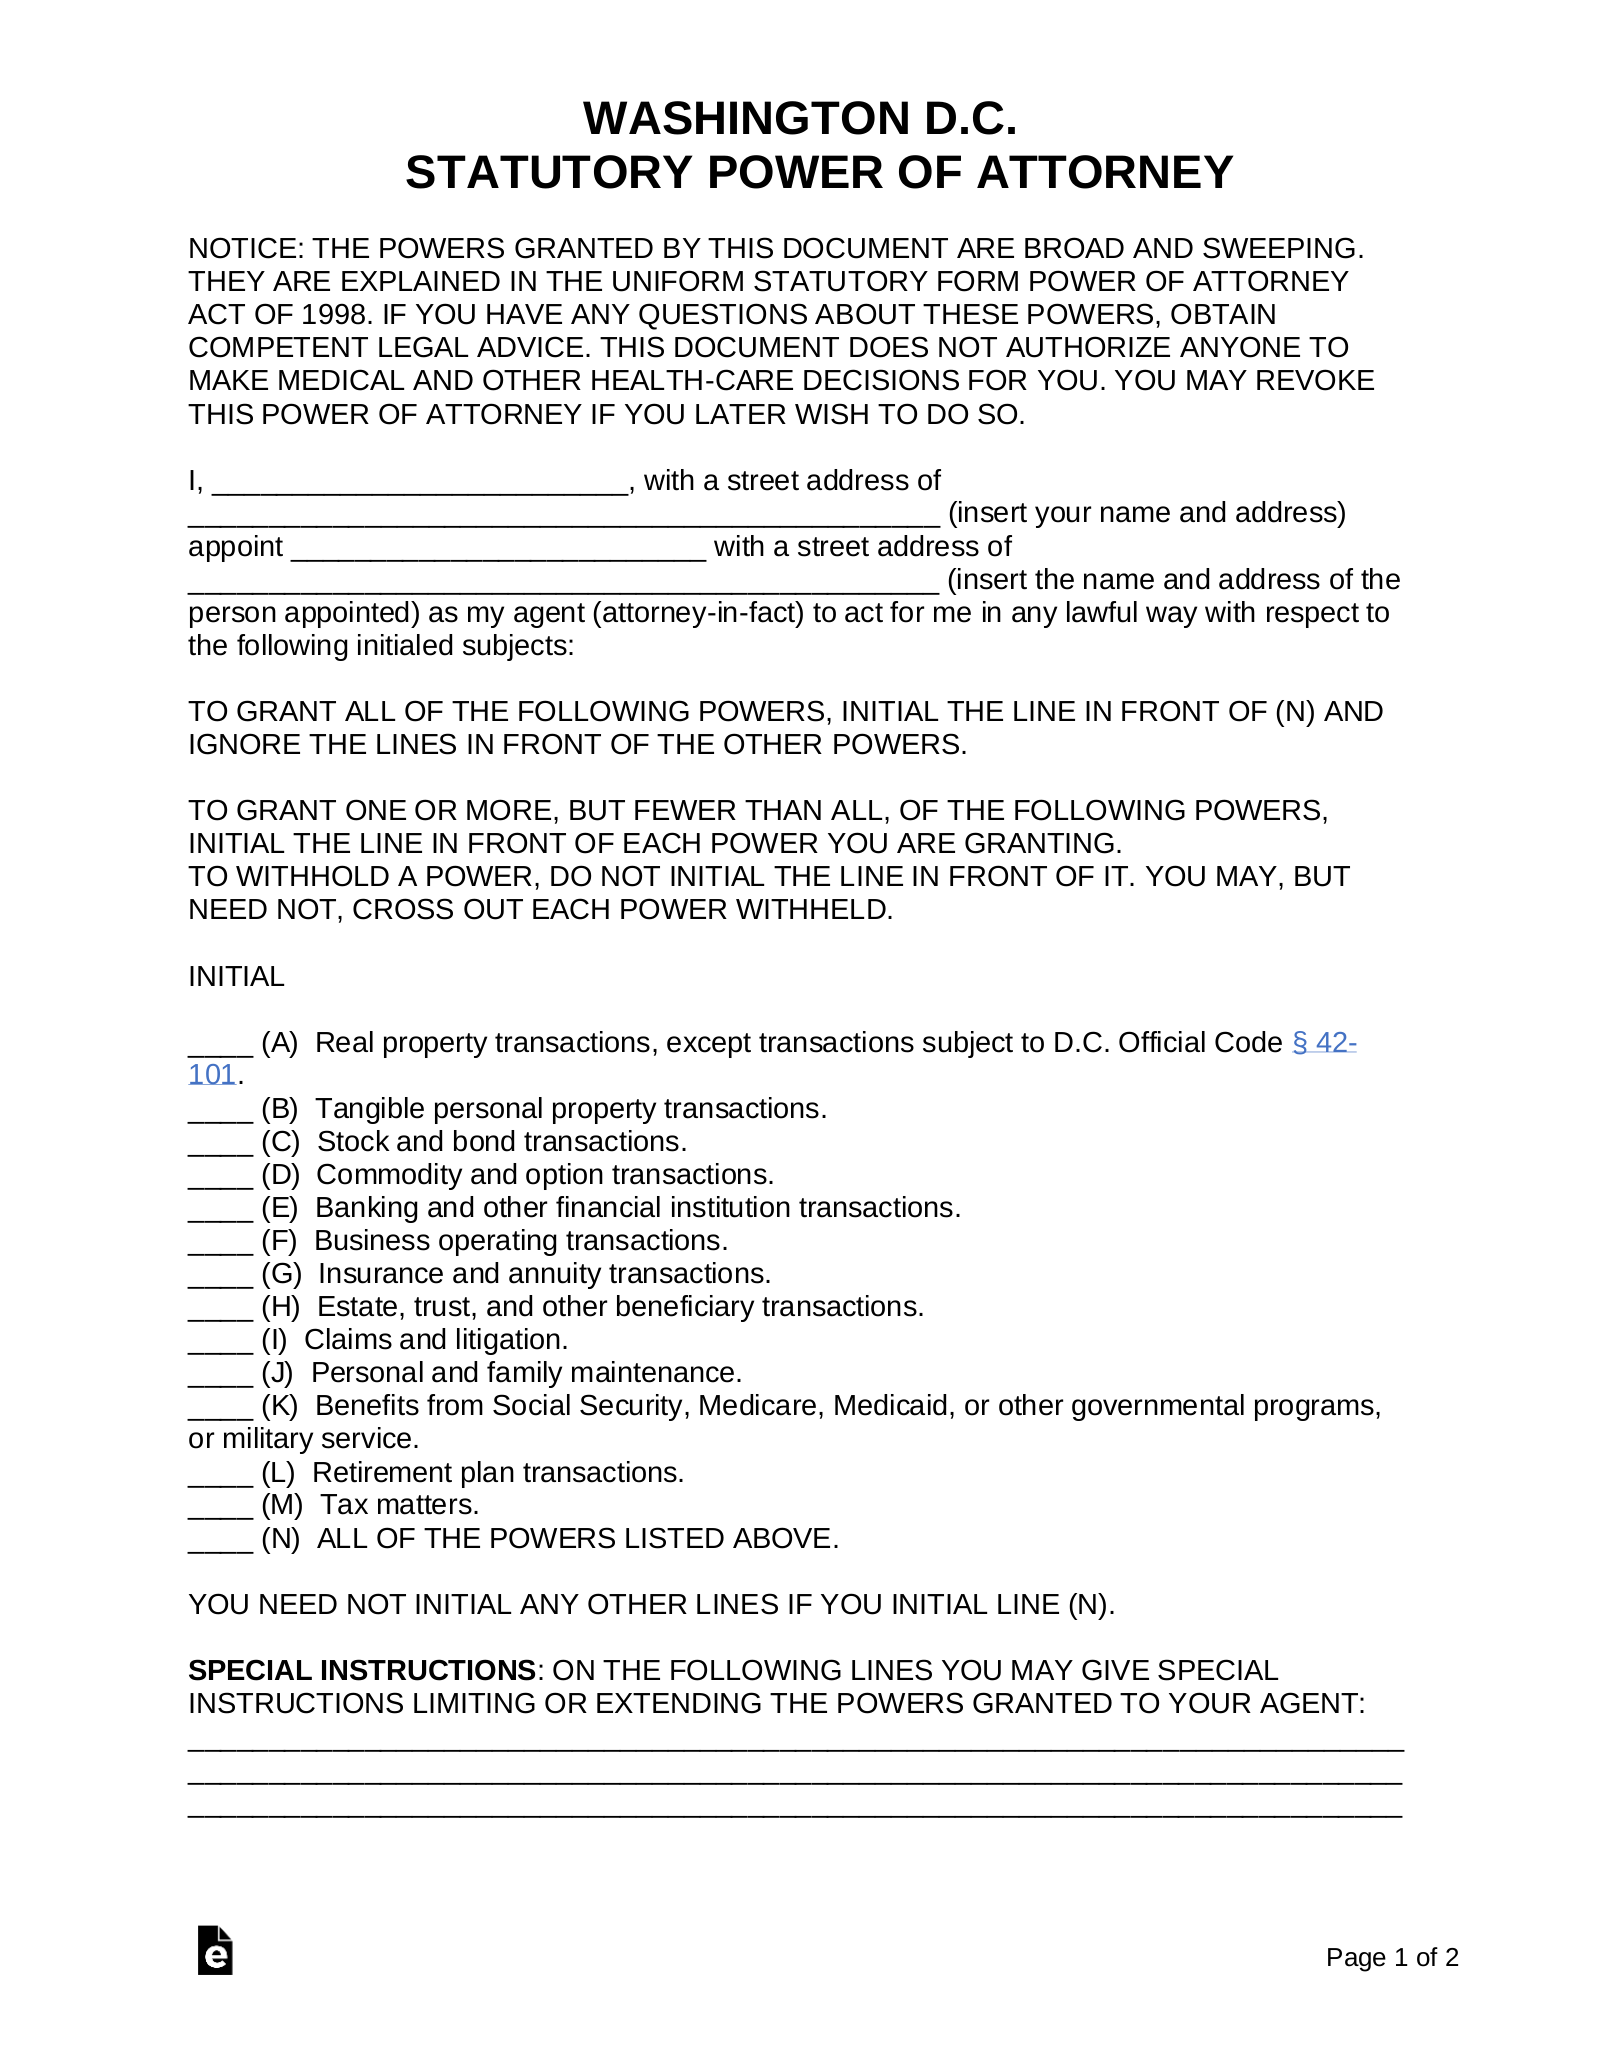 Free Washington D.C. Power of Attorney Forms   PDF   Word – eForms